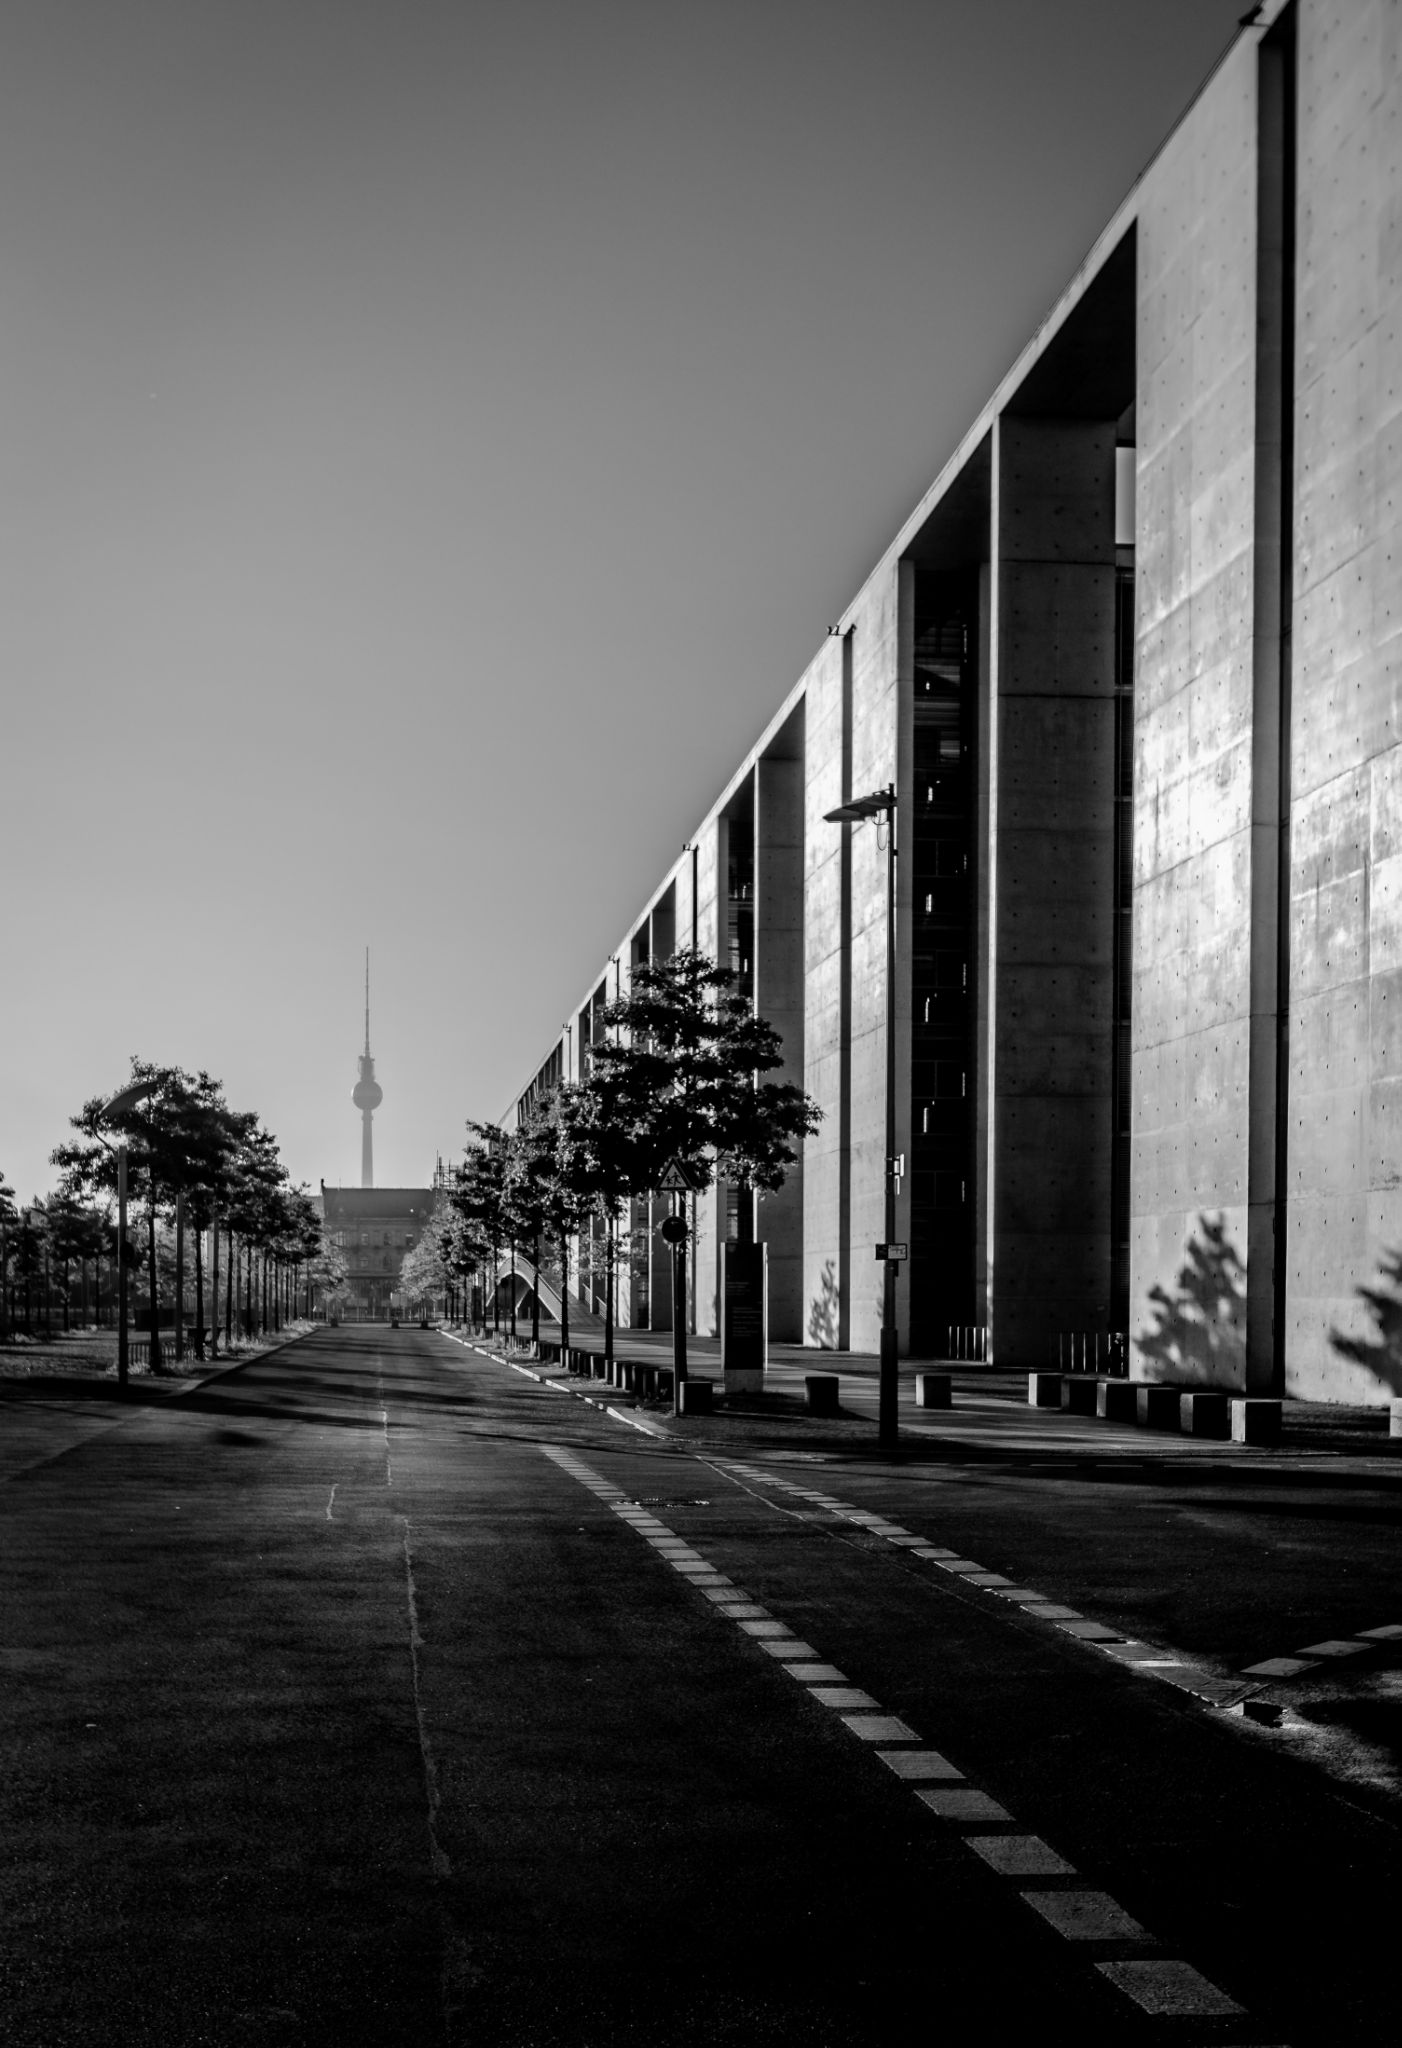 Berlin in black and white by ThomasBechtleFotografie